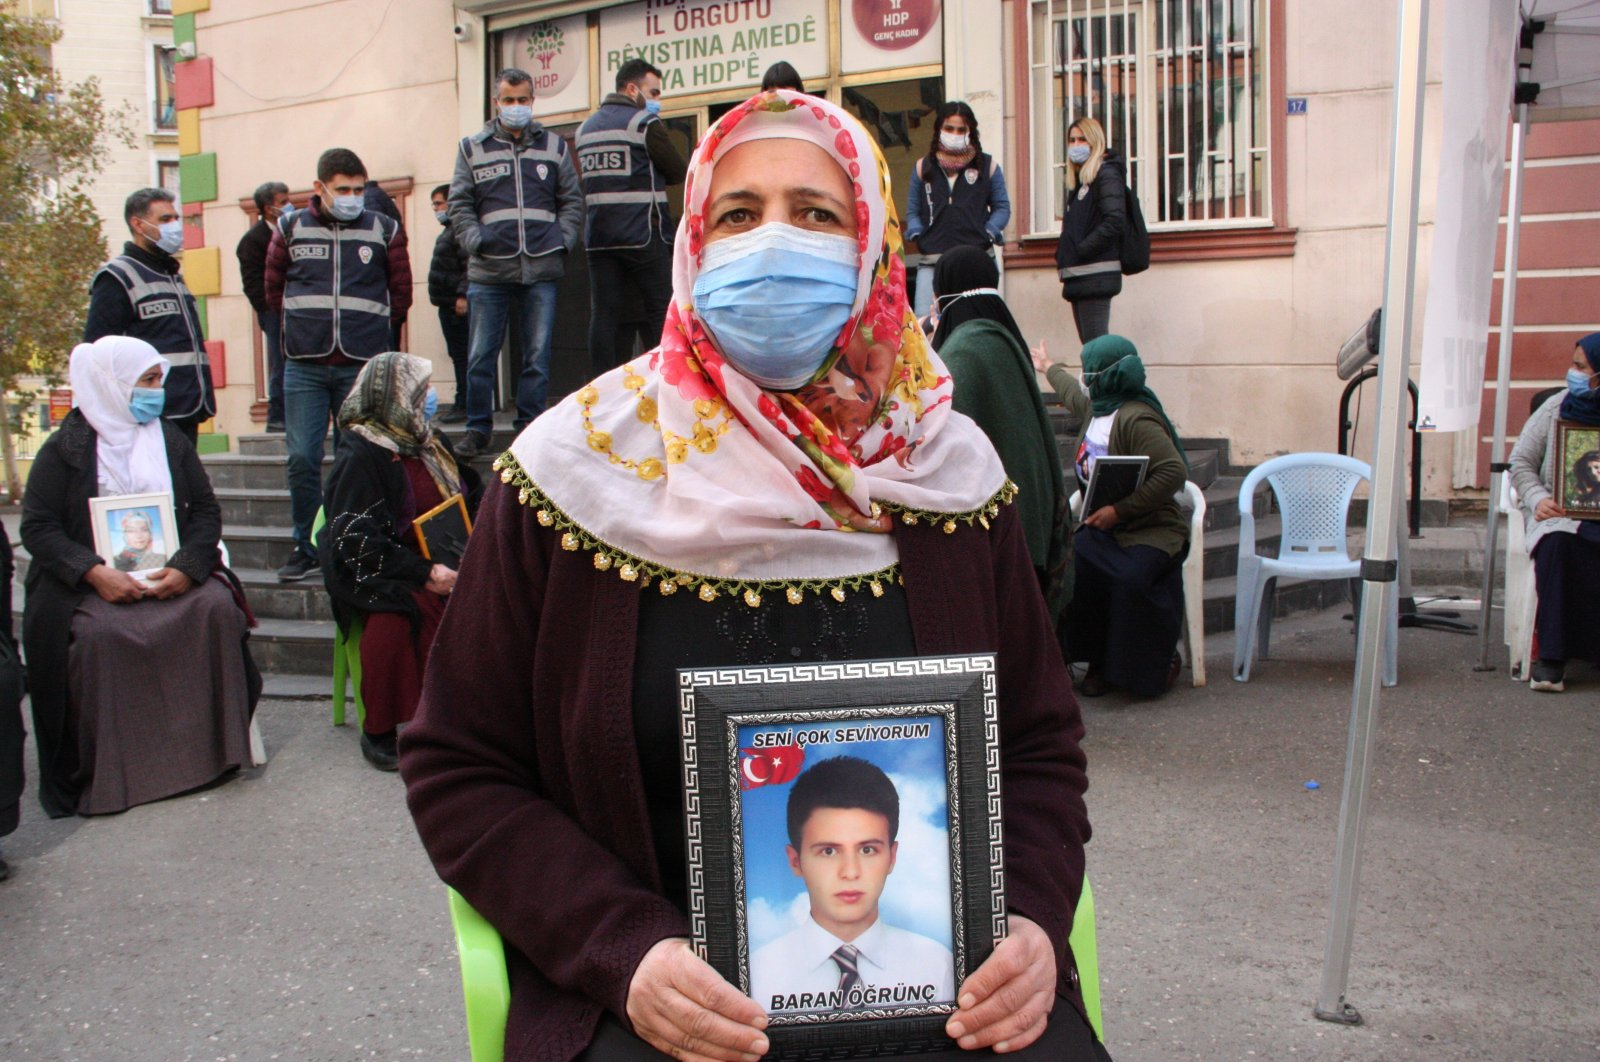 Mother Solmaz Öğrünç poses with a photo of her son Baran, who was abducted by the PKK in 2015 in front of HDP headquarters in Turkey's Diyarbakır province on Dec. 1, 2020 (IHA File Photo)